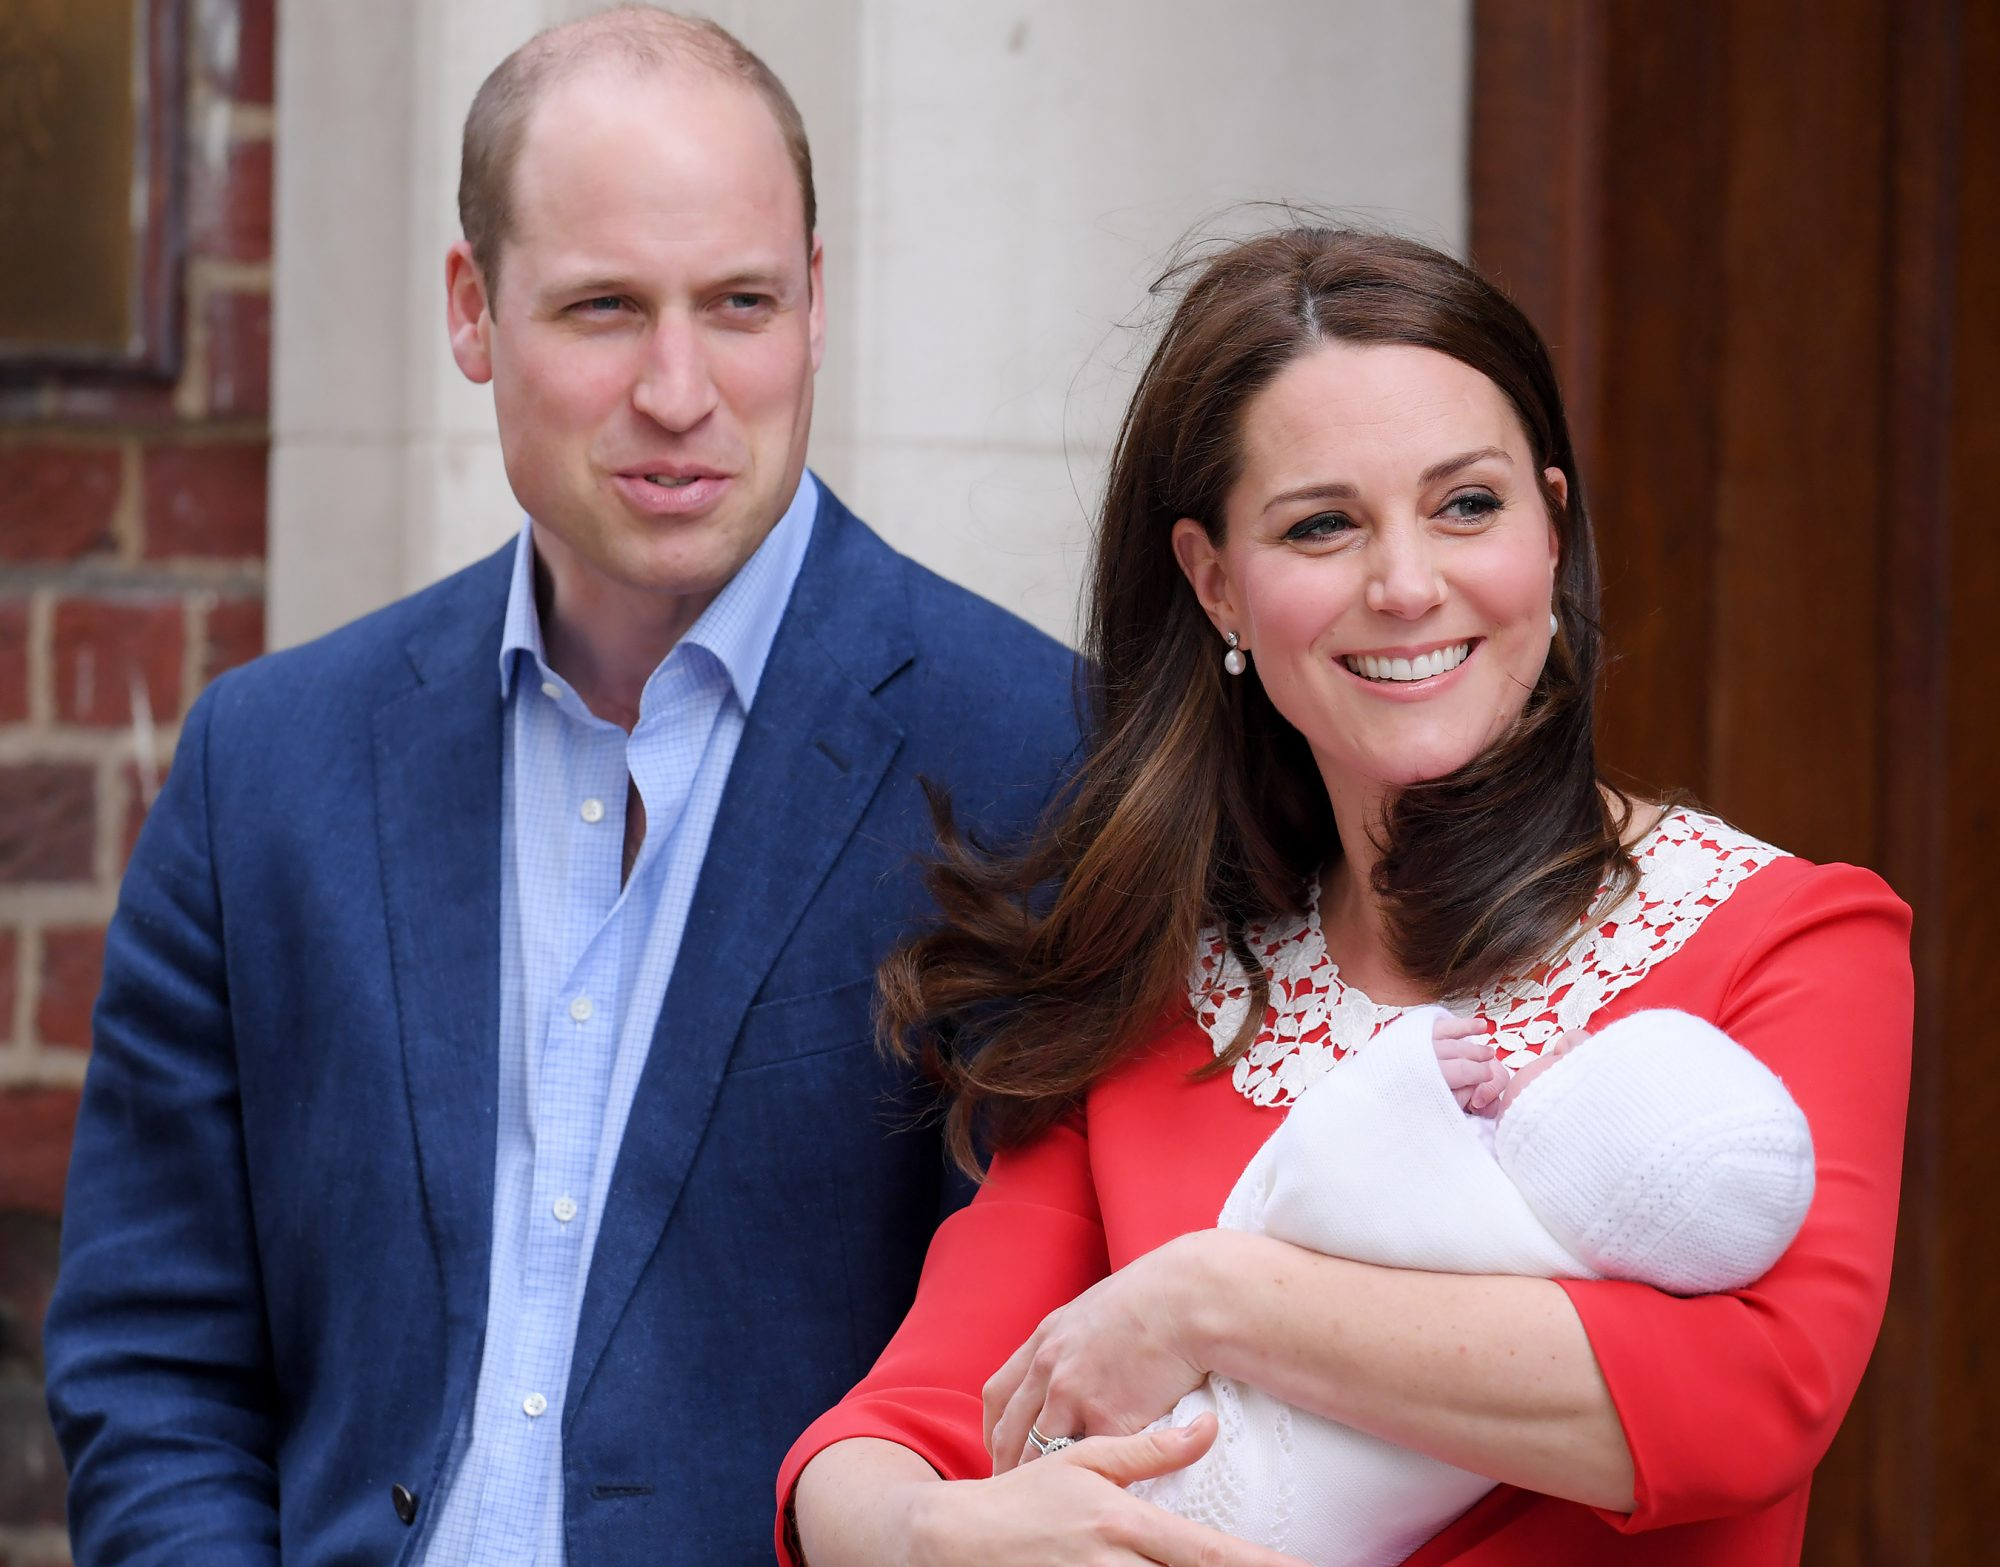 Kate Middleton Steps Out with New Royal Baby Just 7 Hours After Giving Birth: See the Photos! catherine-1